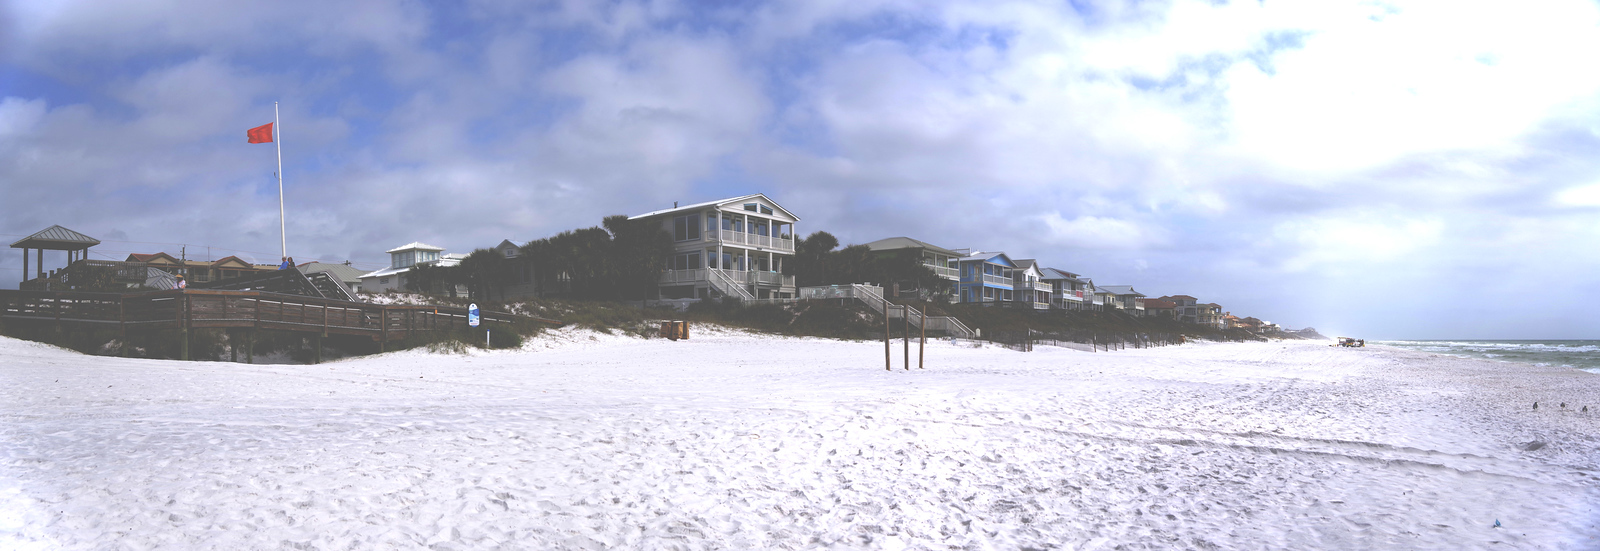 Destin Beaches